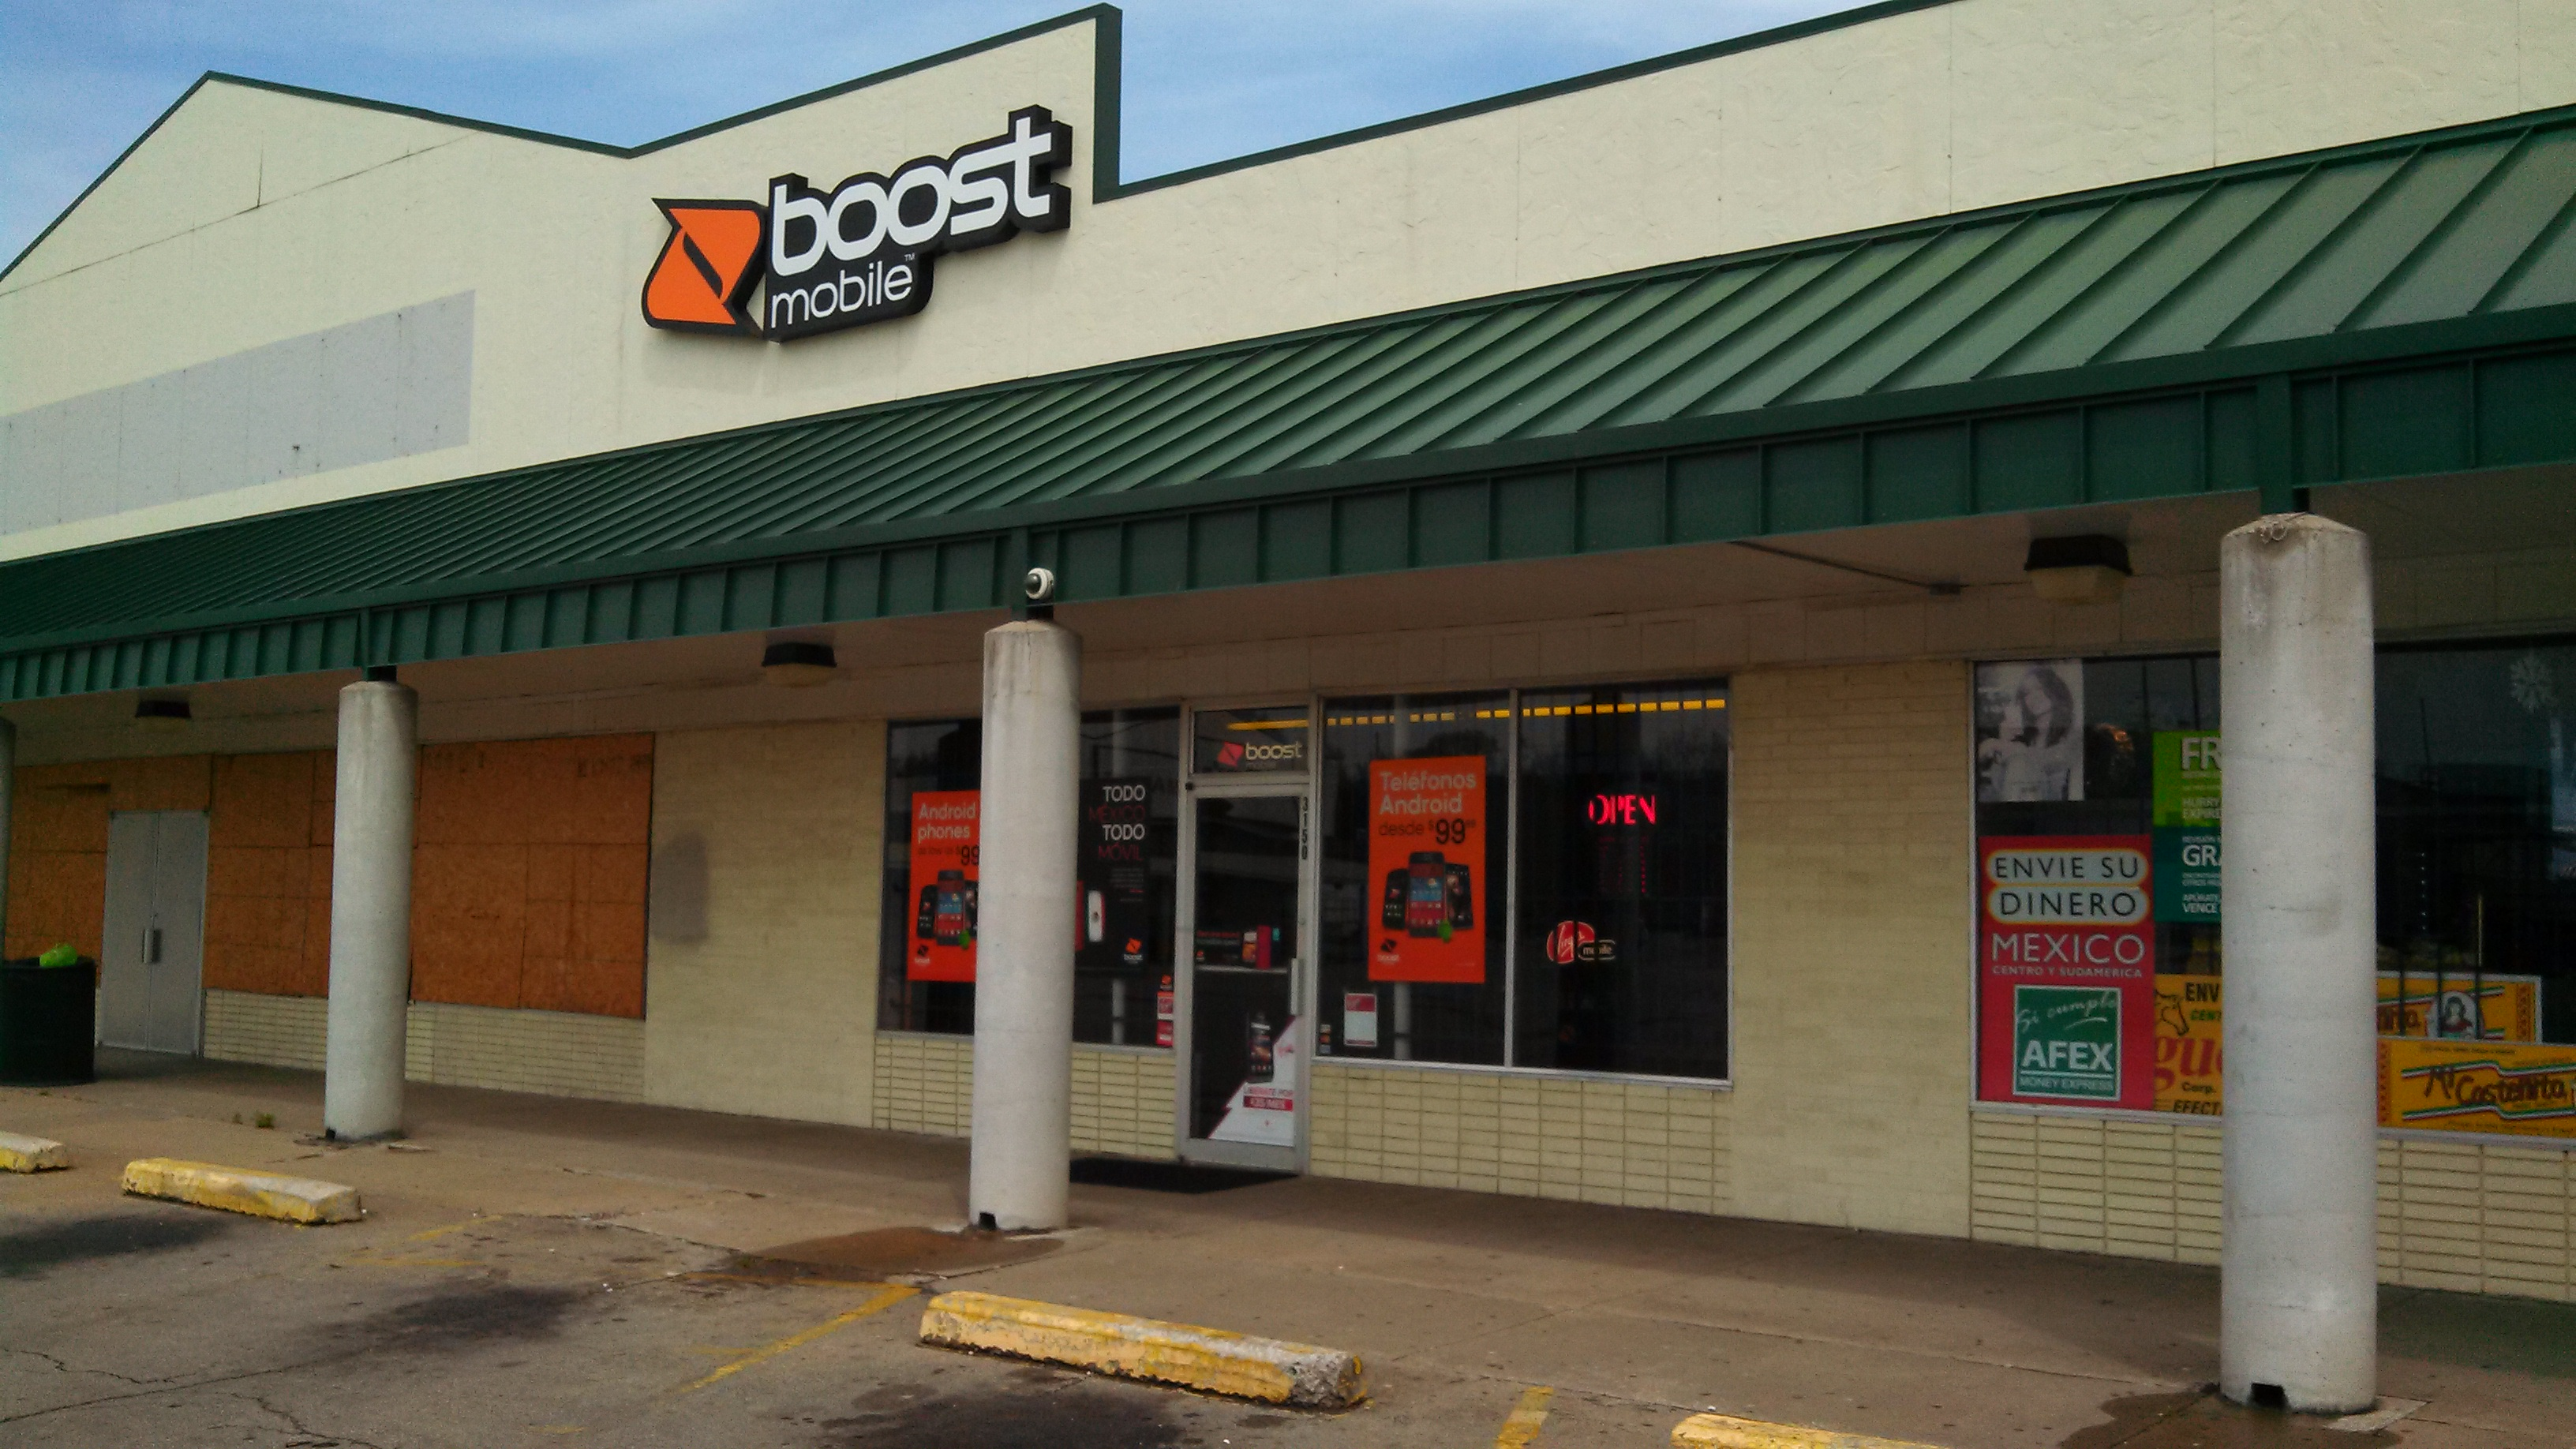 Never miss a great boost mobile US coupon and get our best coupons every week! Boost Mobile In-Store Offers. Click through to see all of Boost Mobile's in-store deals. To activate the deal, enroll in Auto Re-Boost through Boost Mobile; click for details.5/5(14).